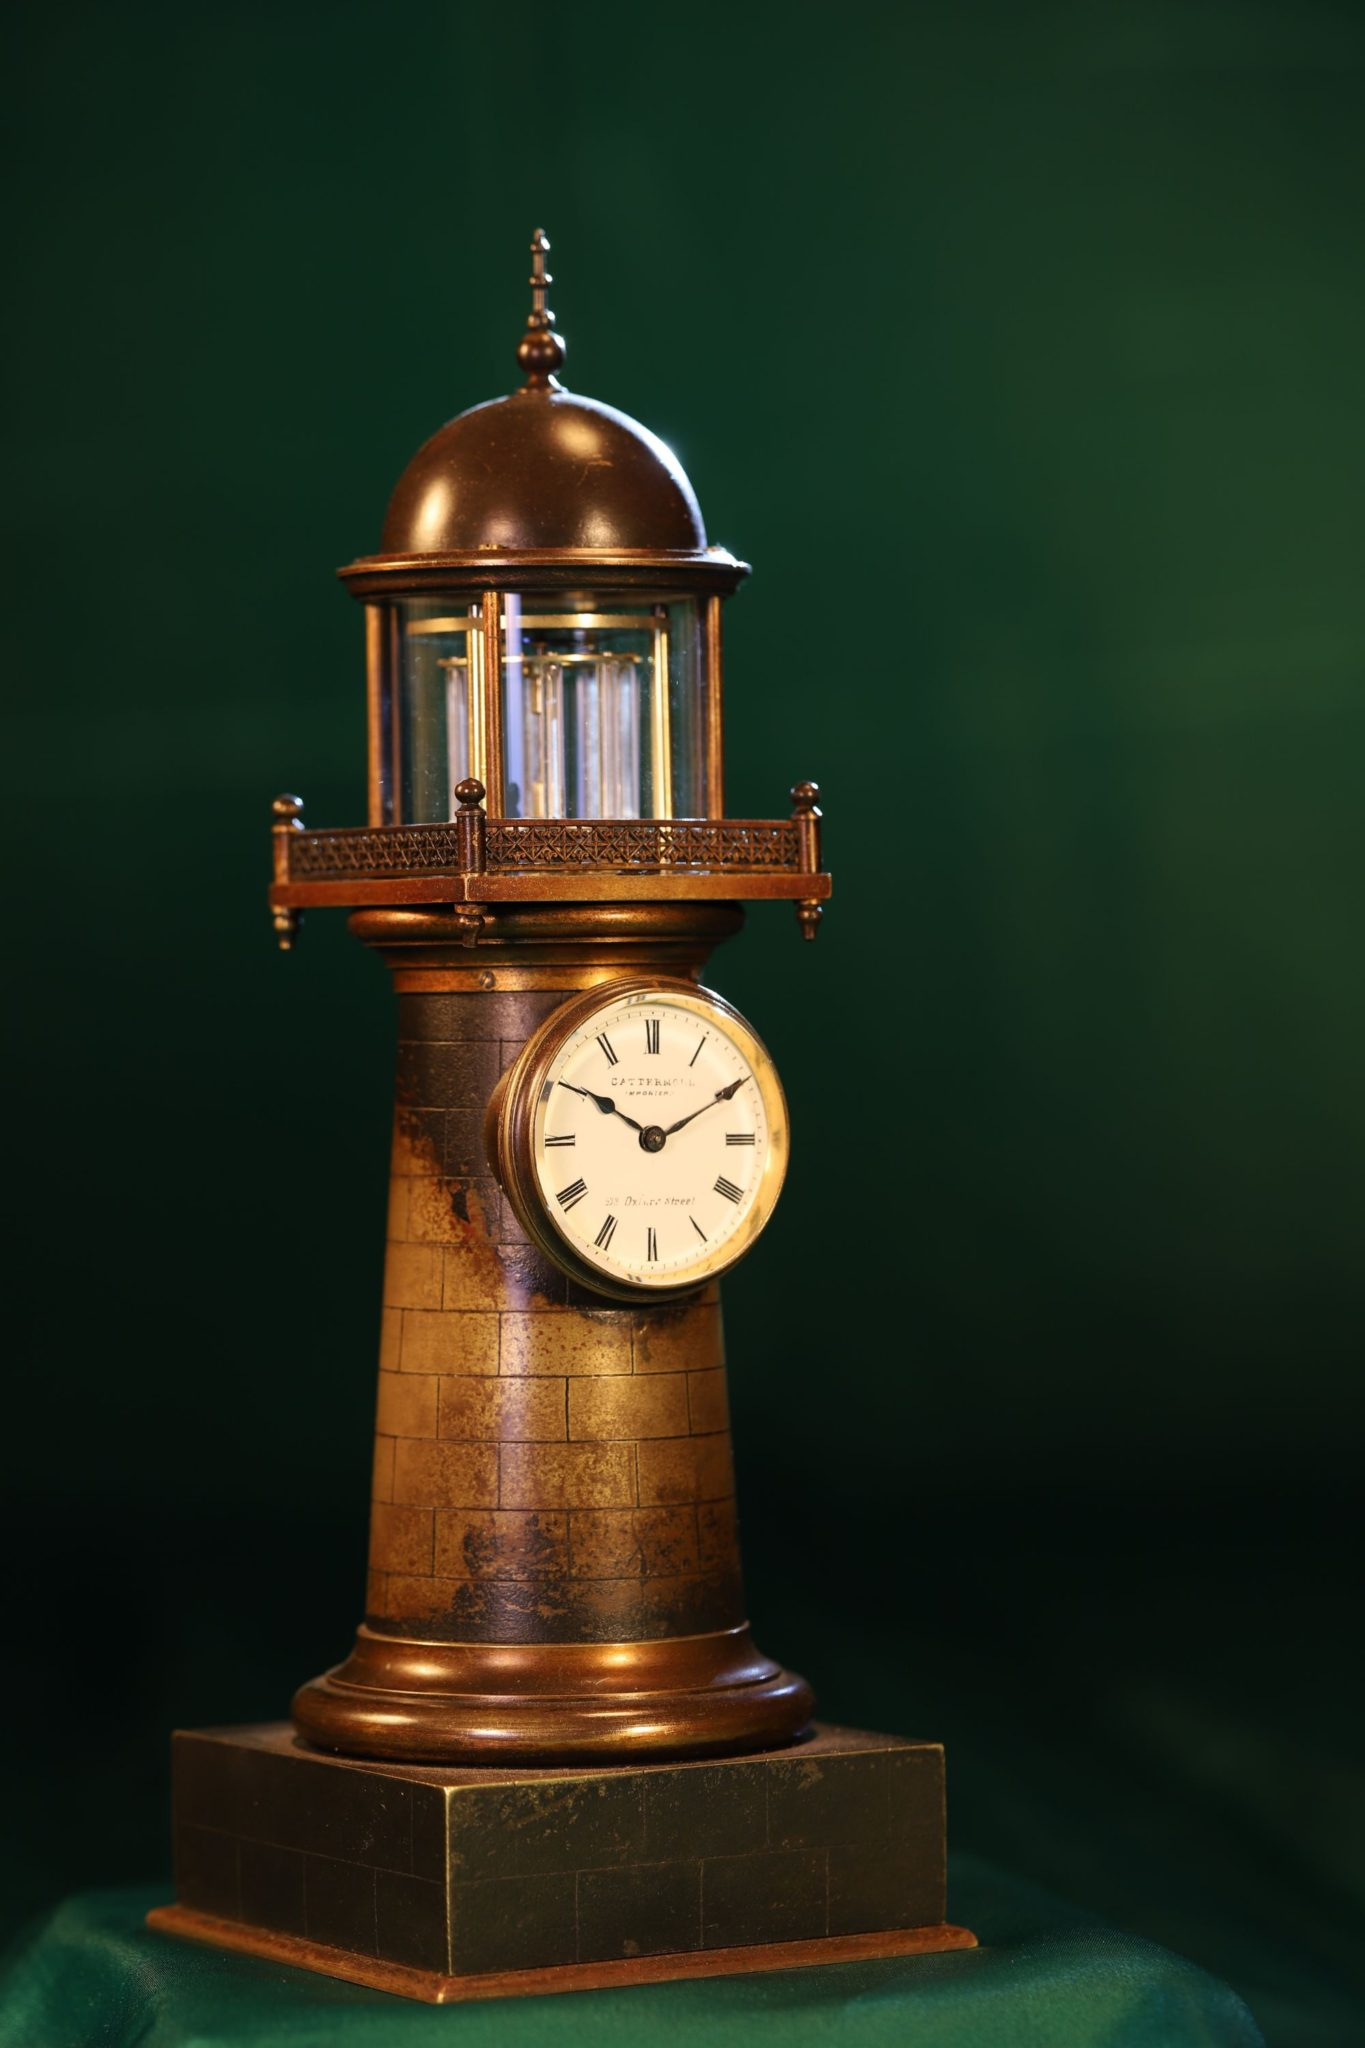 Image of Industrial Series Lighthouse Clock by Guilmet No 249 c1870